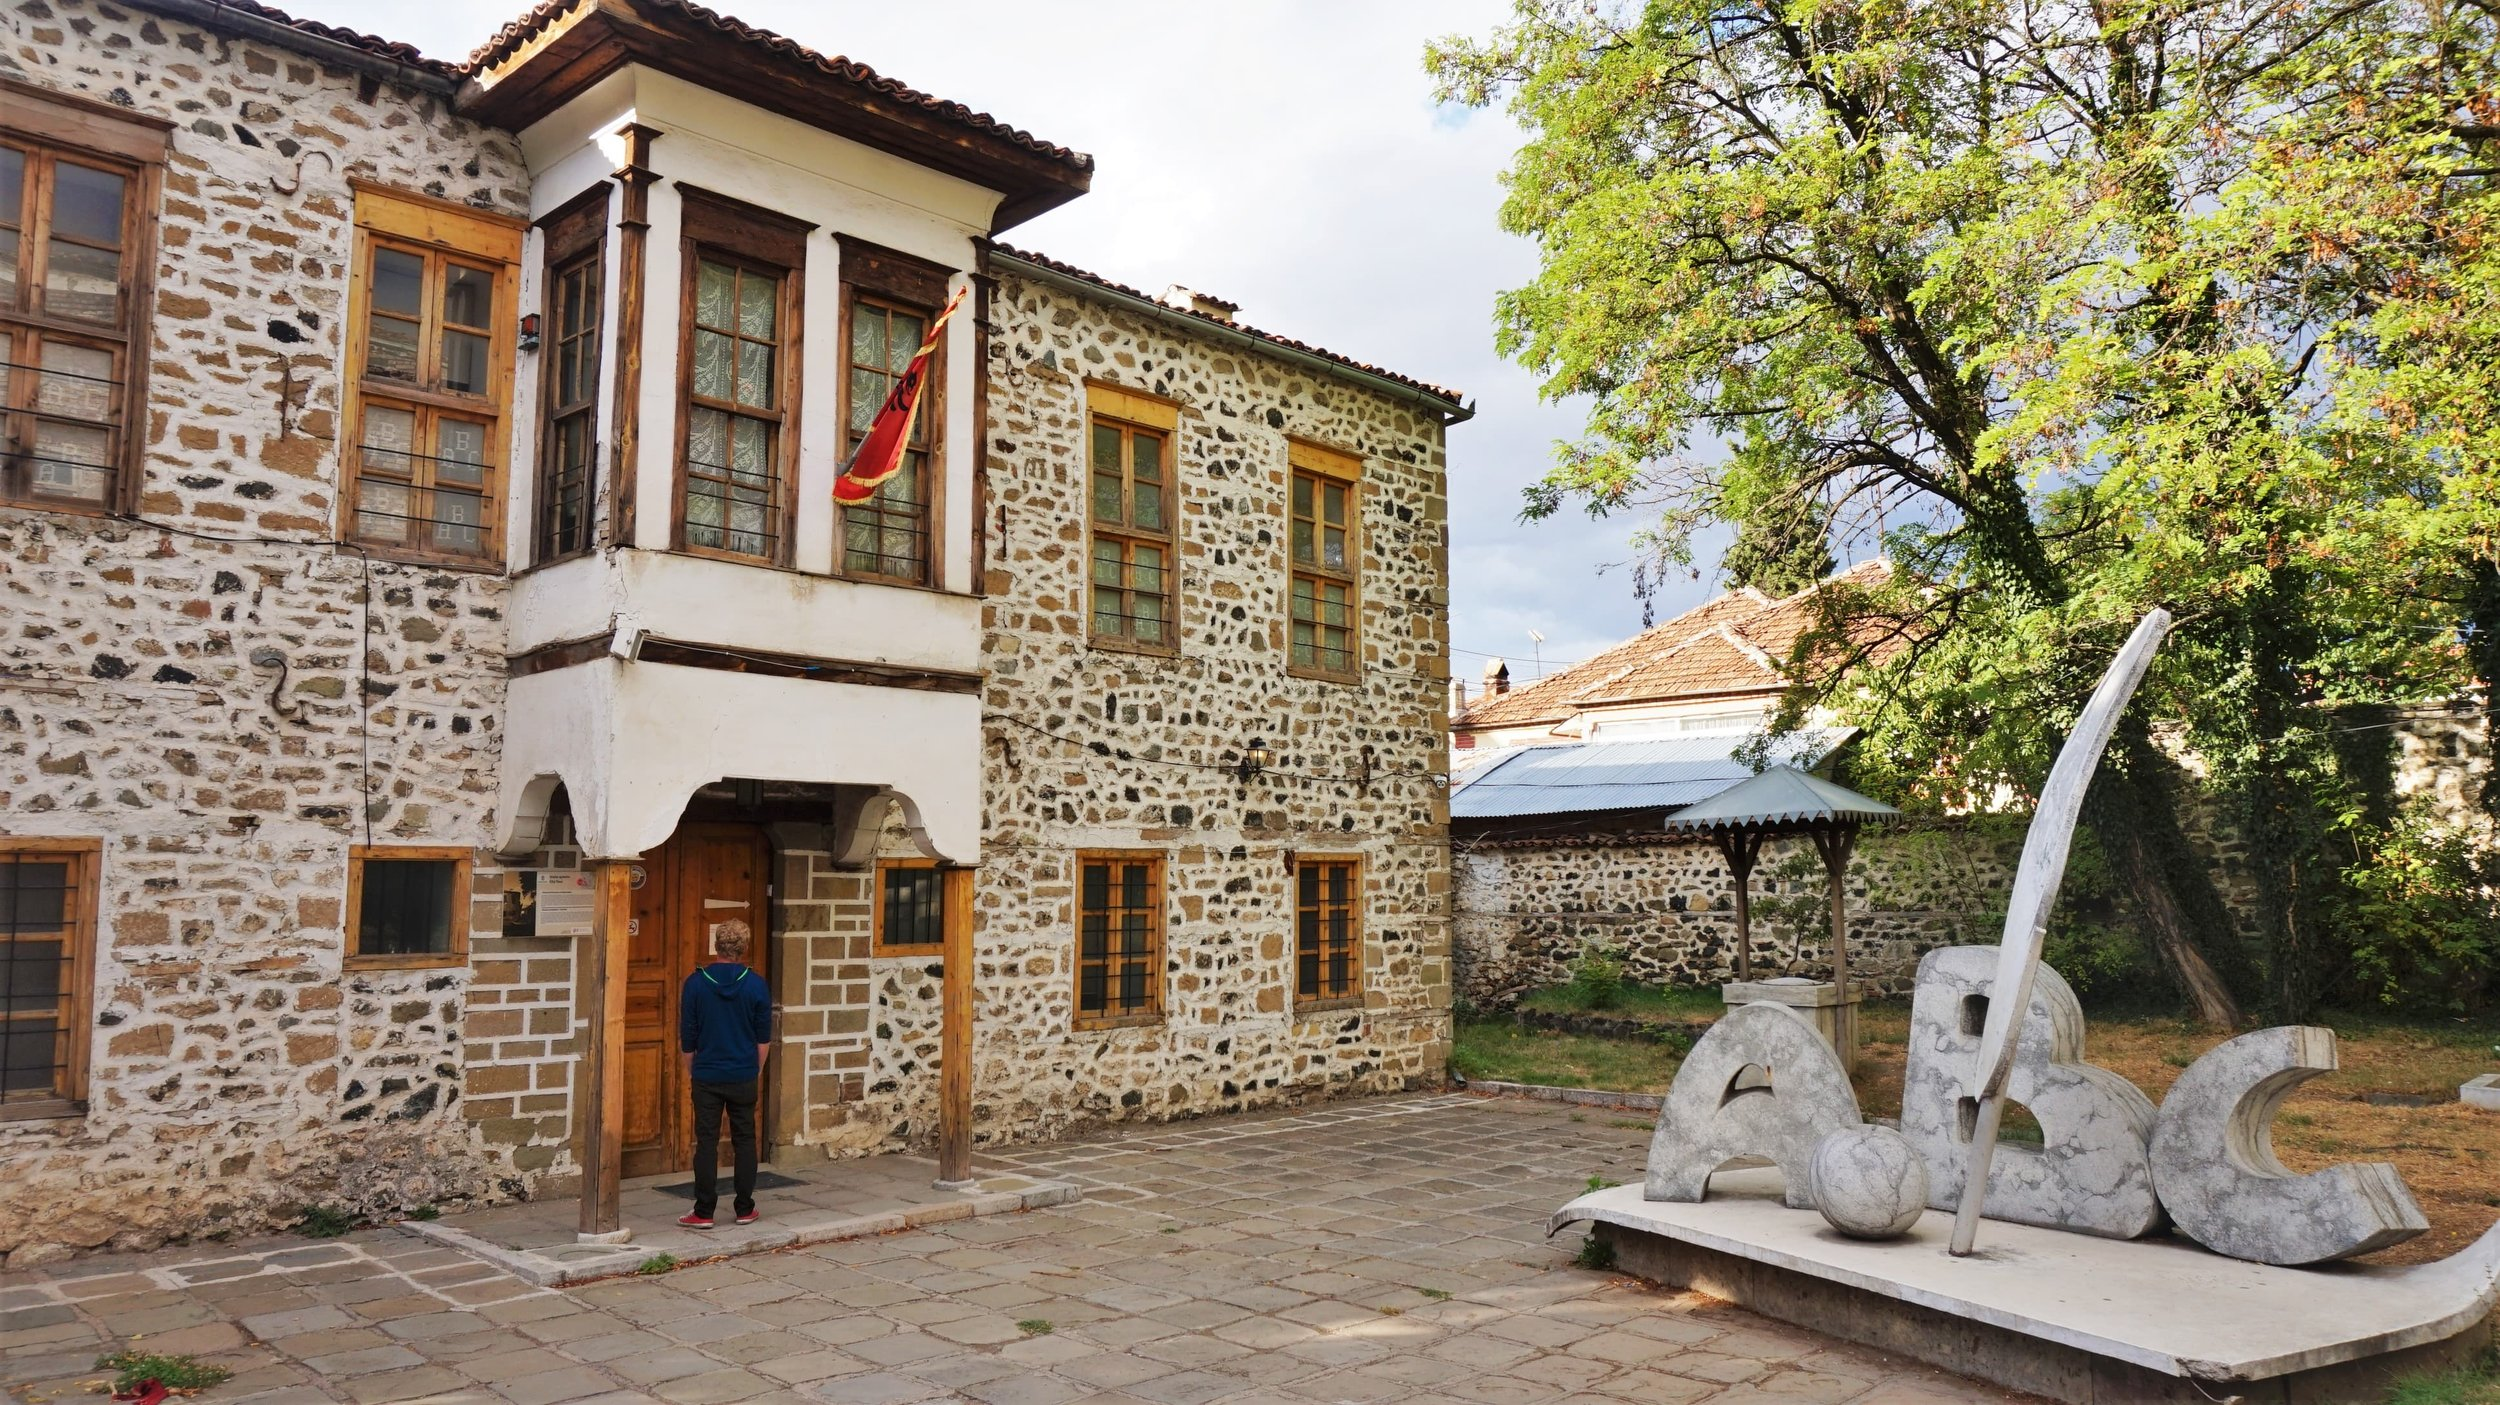 Best things to do in albania visit albania's first school korce